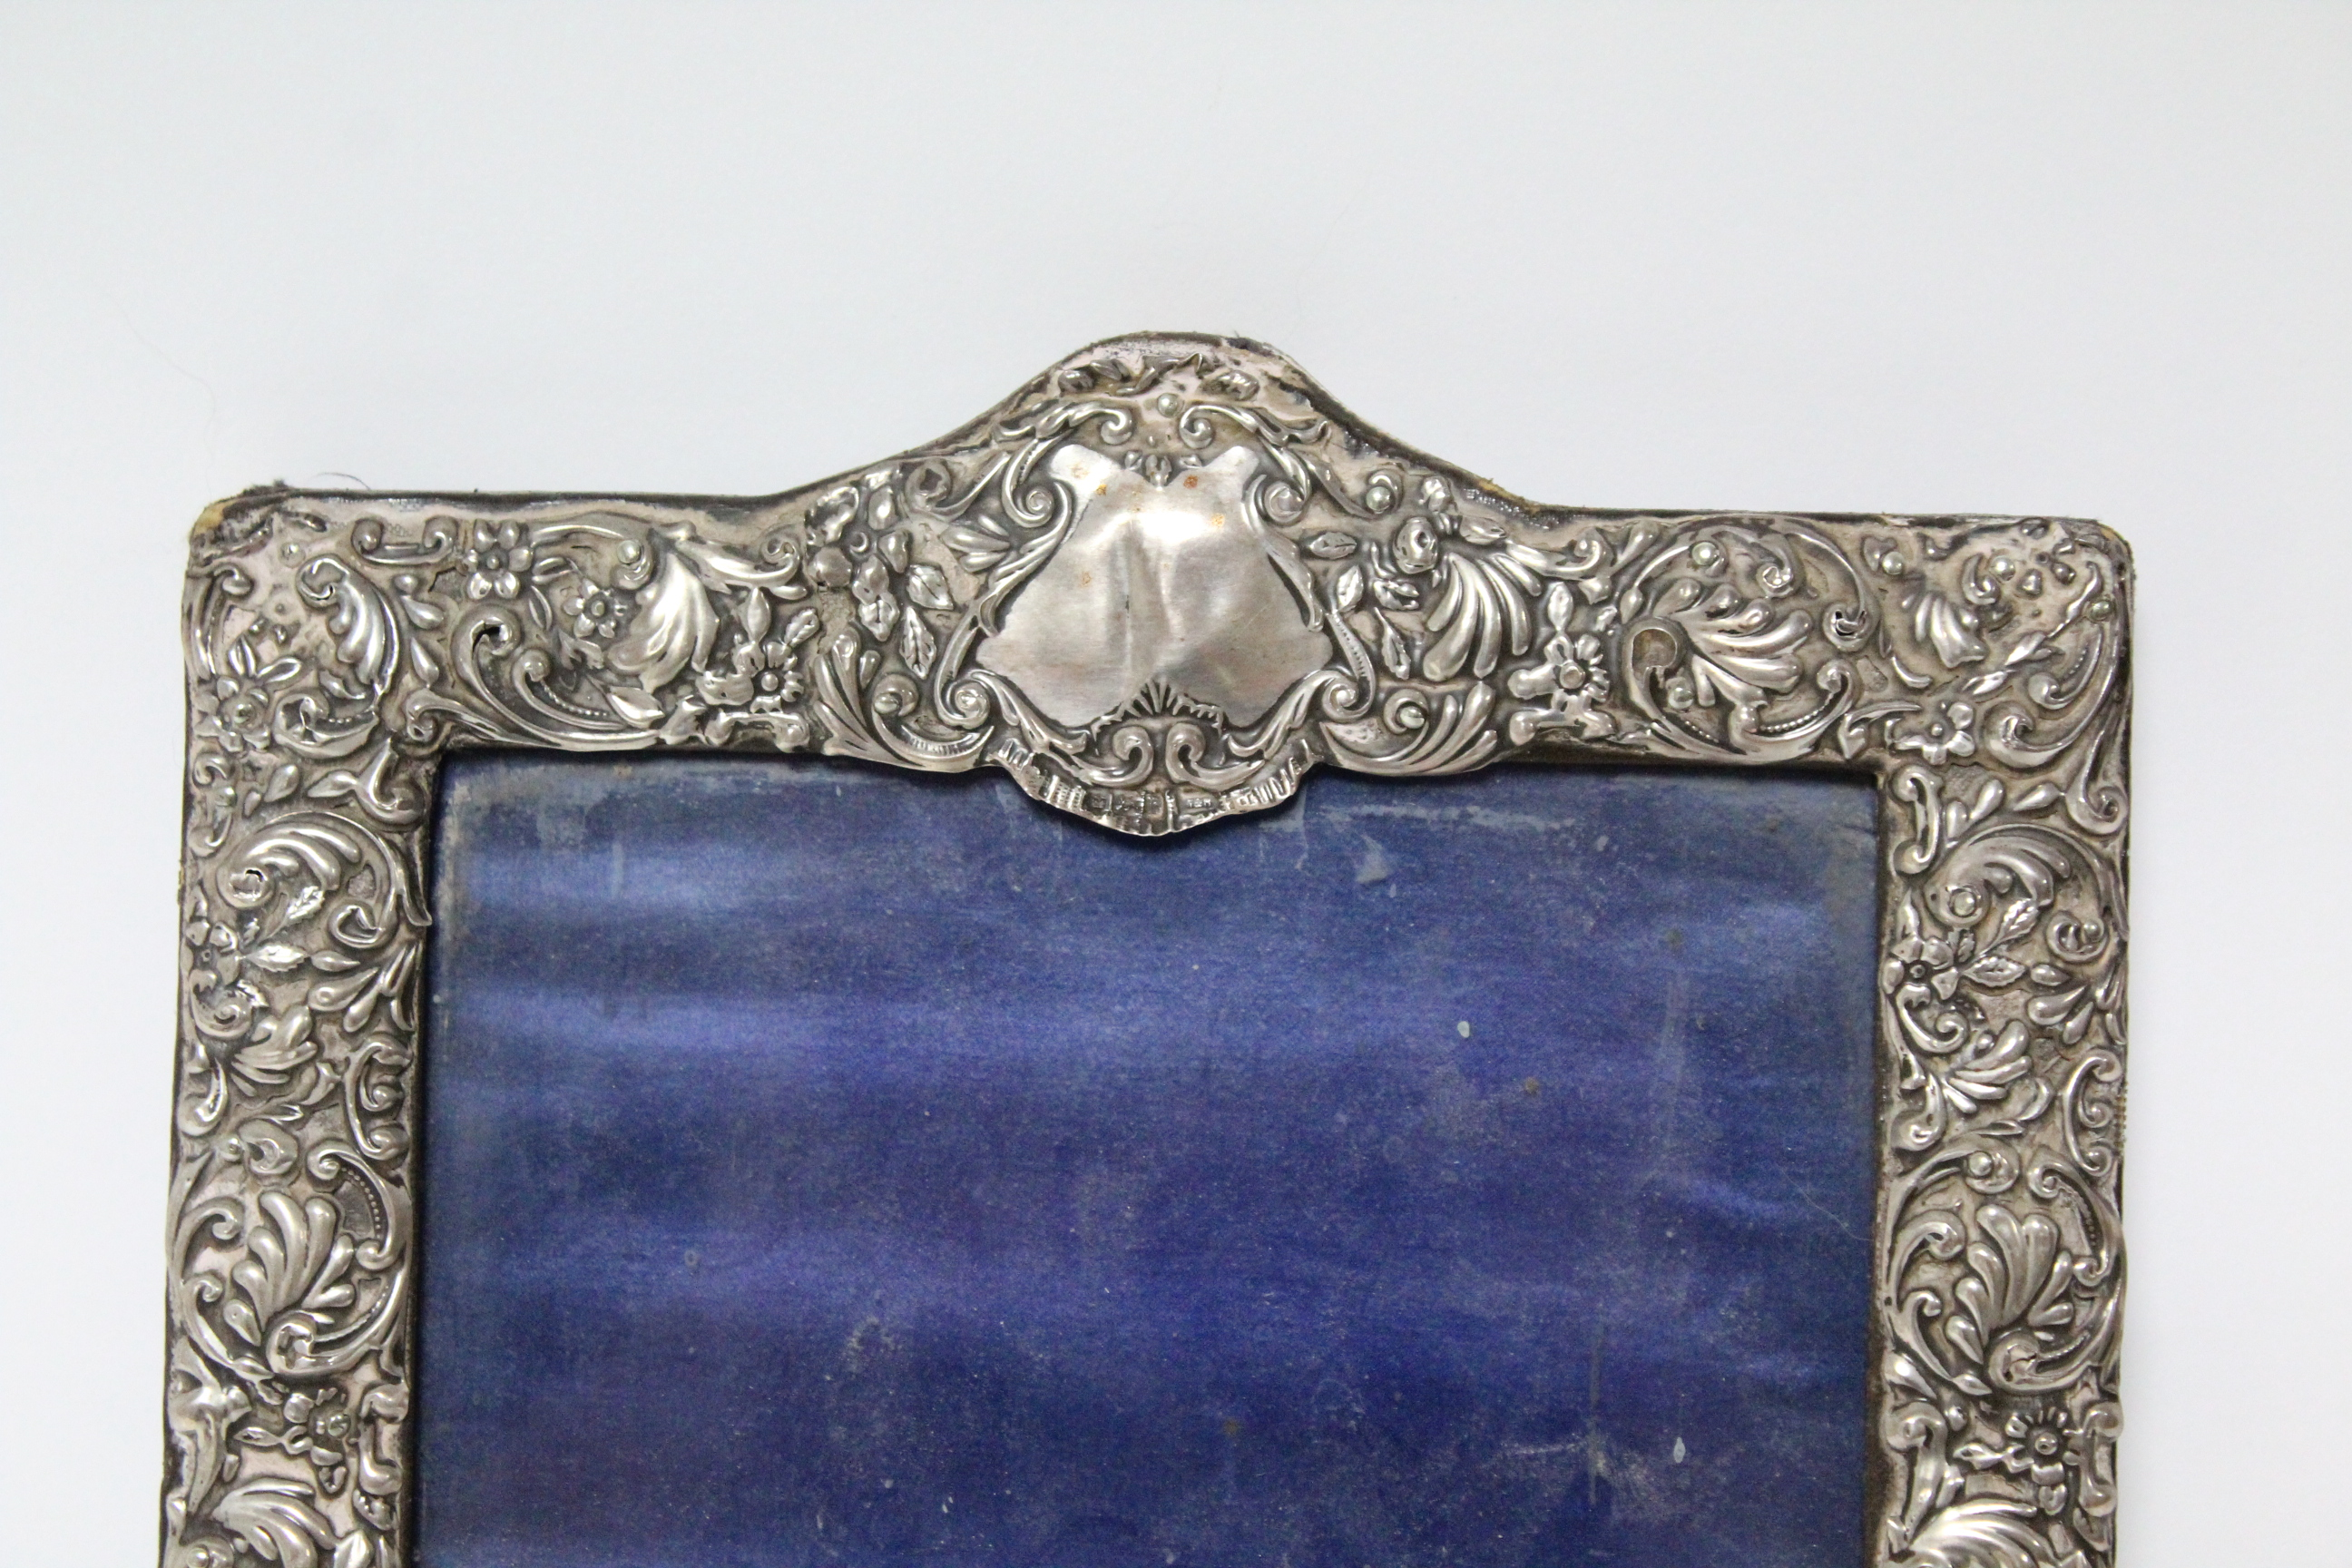 Lot 21 - A late Victorian rectangular photograph frame with all-over embossed floral decoration, Sheffield